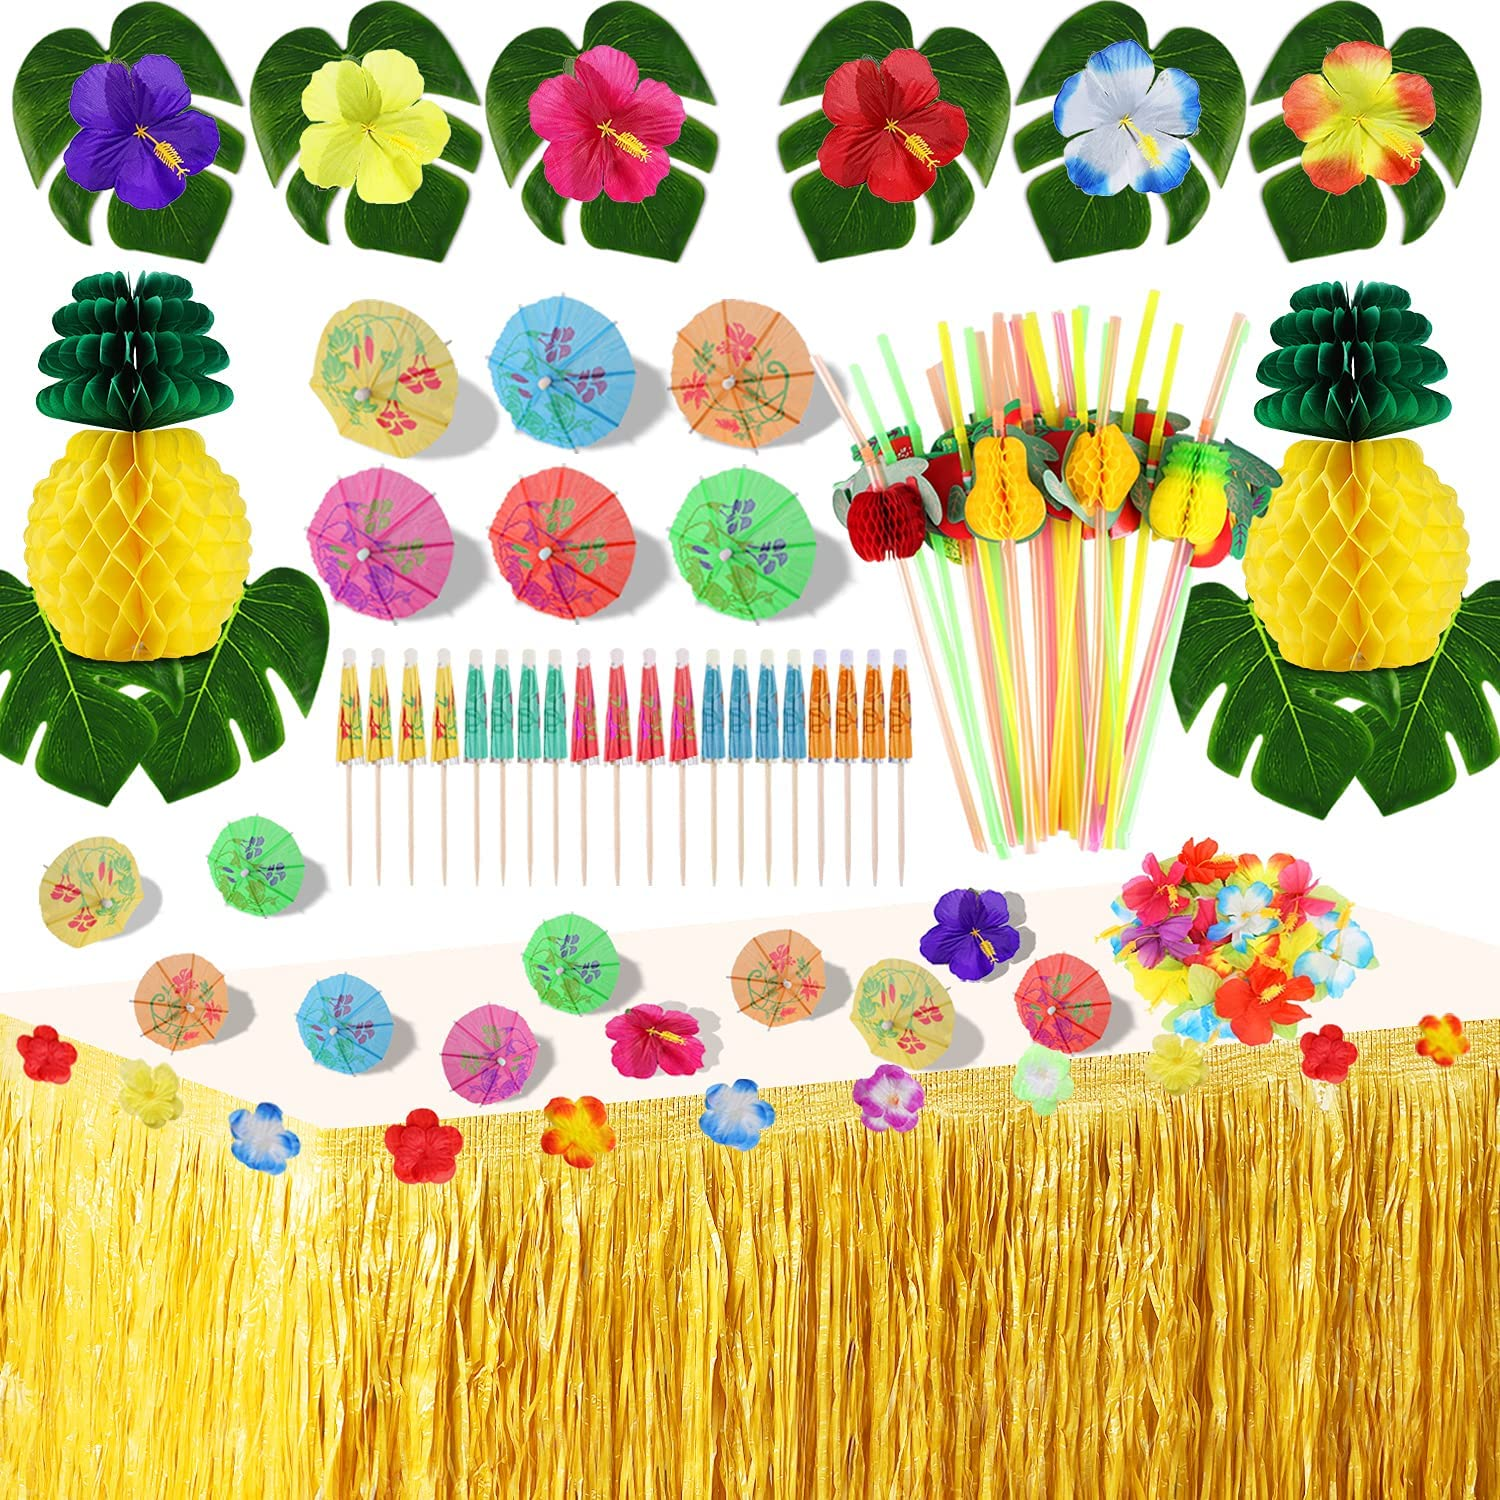 Hawaii Tropical Party Decoration Set with 9 feet Hawaii Luau Grass Table Skirt, Hibiscus Flowers, Palm Leaves, Paper Pineapple, Umbrella Food Toppers and 3D Fruit Straws Luau Party Supplies